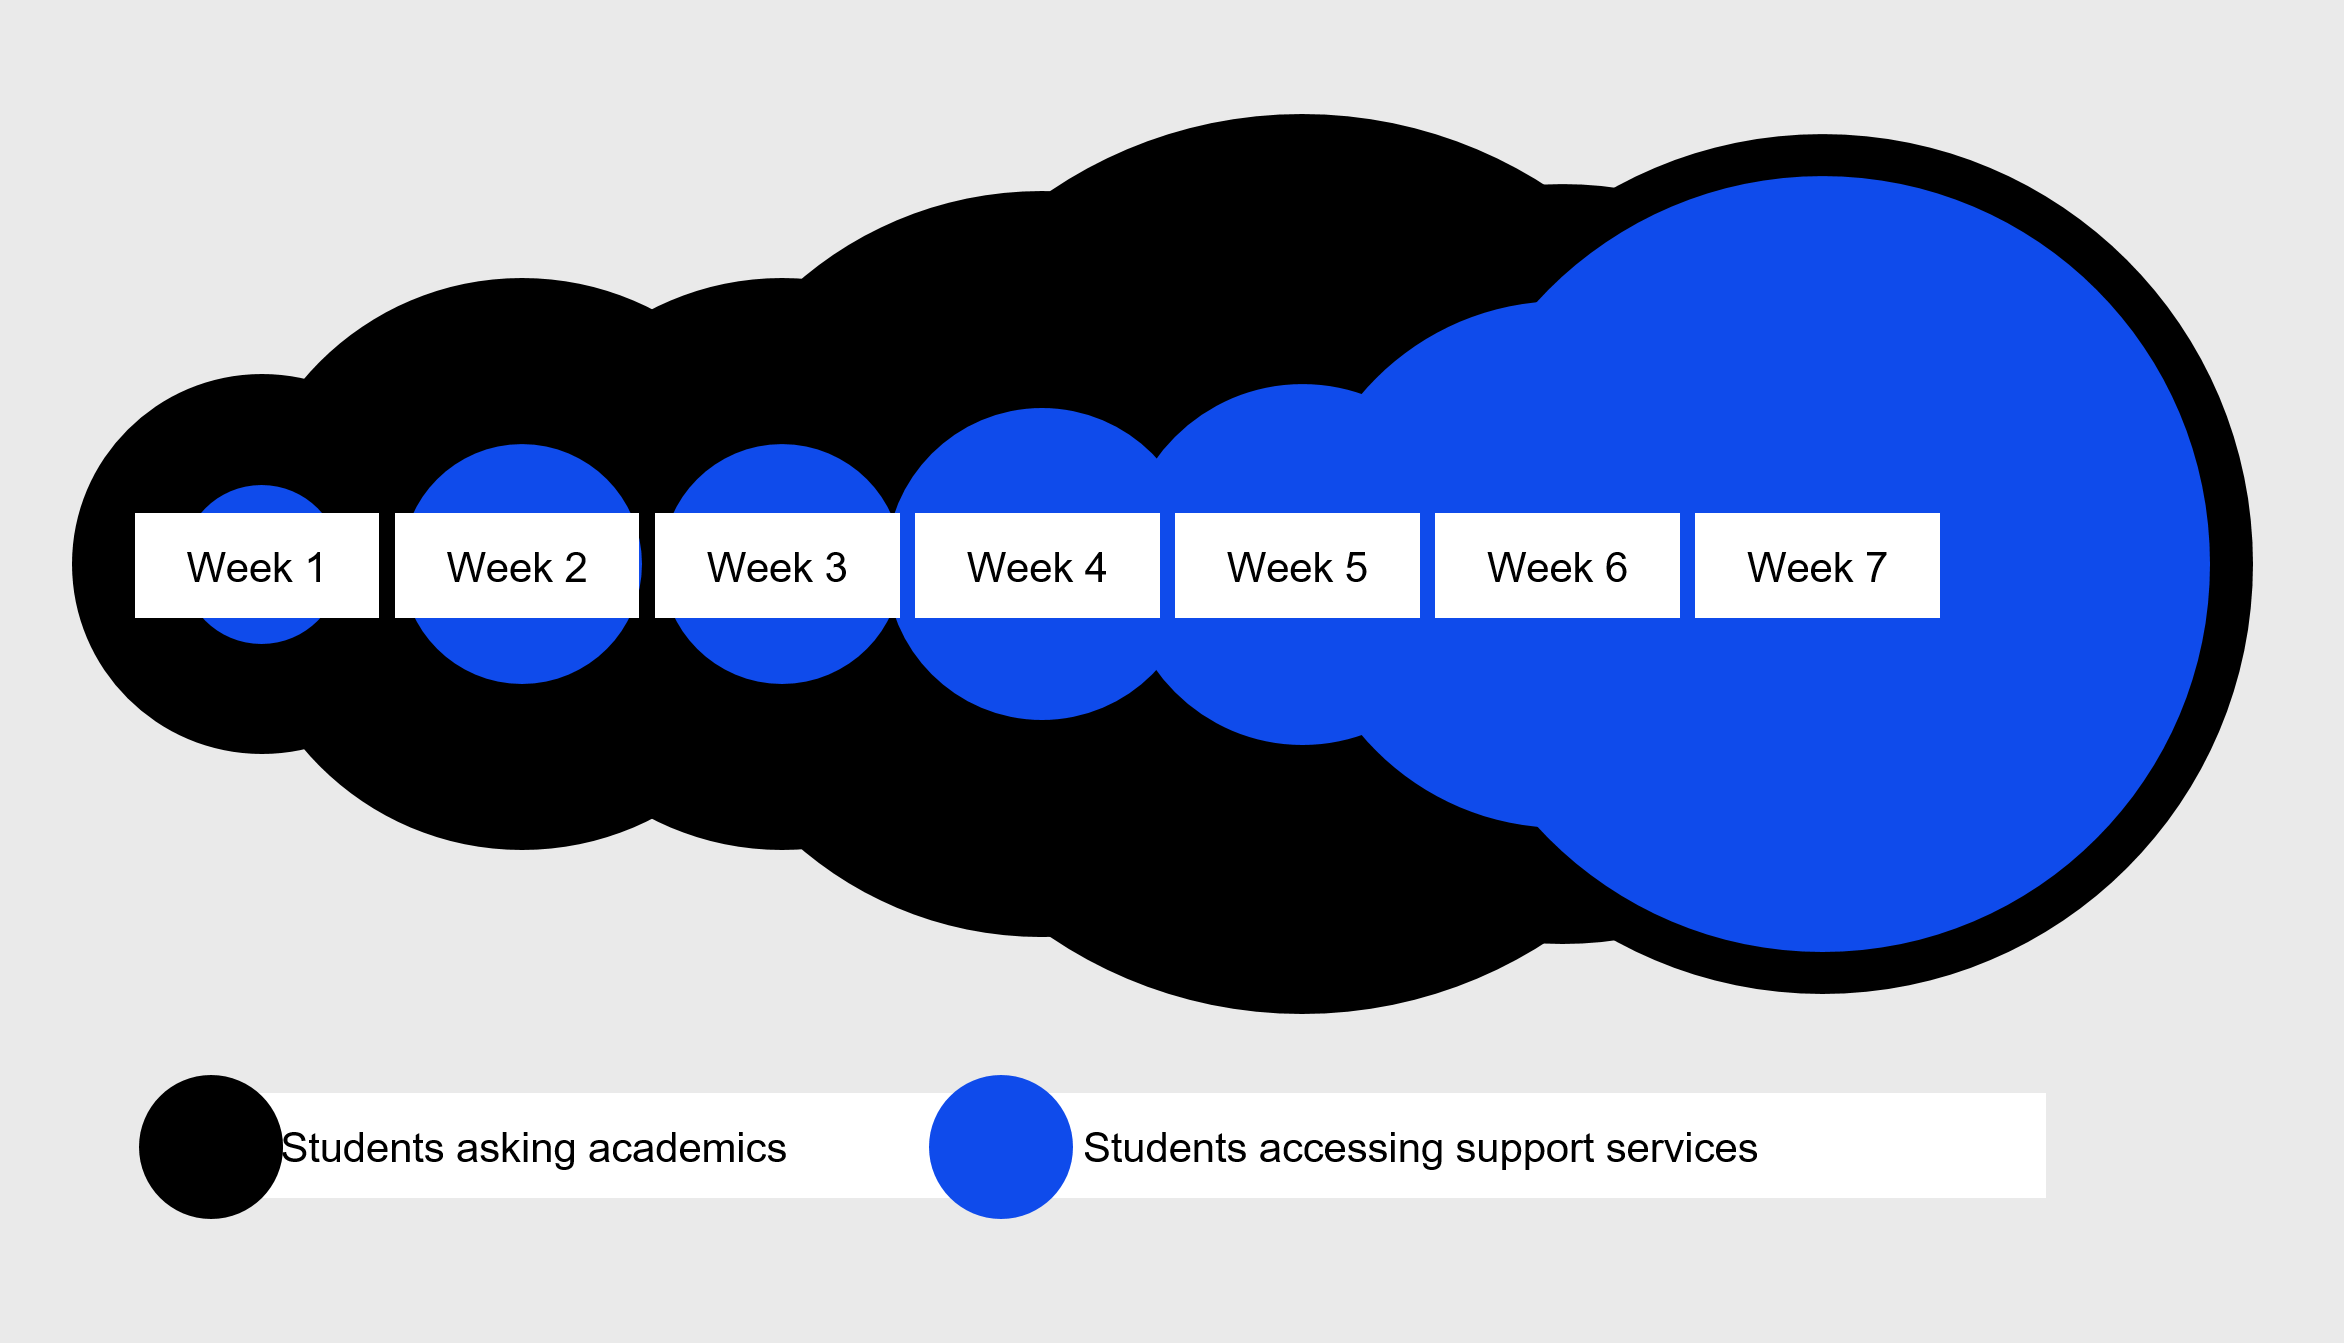 A graph showing student enquiries over the first 7 weeks of Spring session to academics and to support services. It shows a significant delay in when support services are fully utilised by students, while academics are asked about study support at a much higher rate earlier in session.